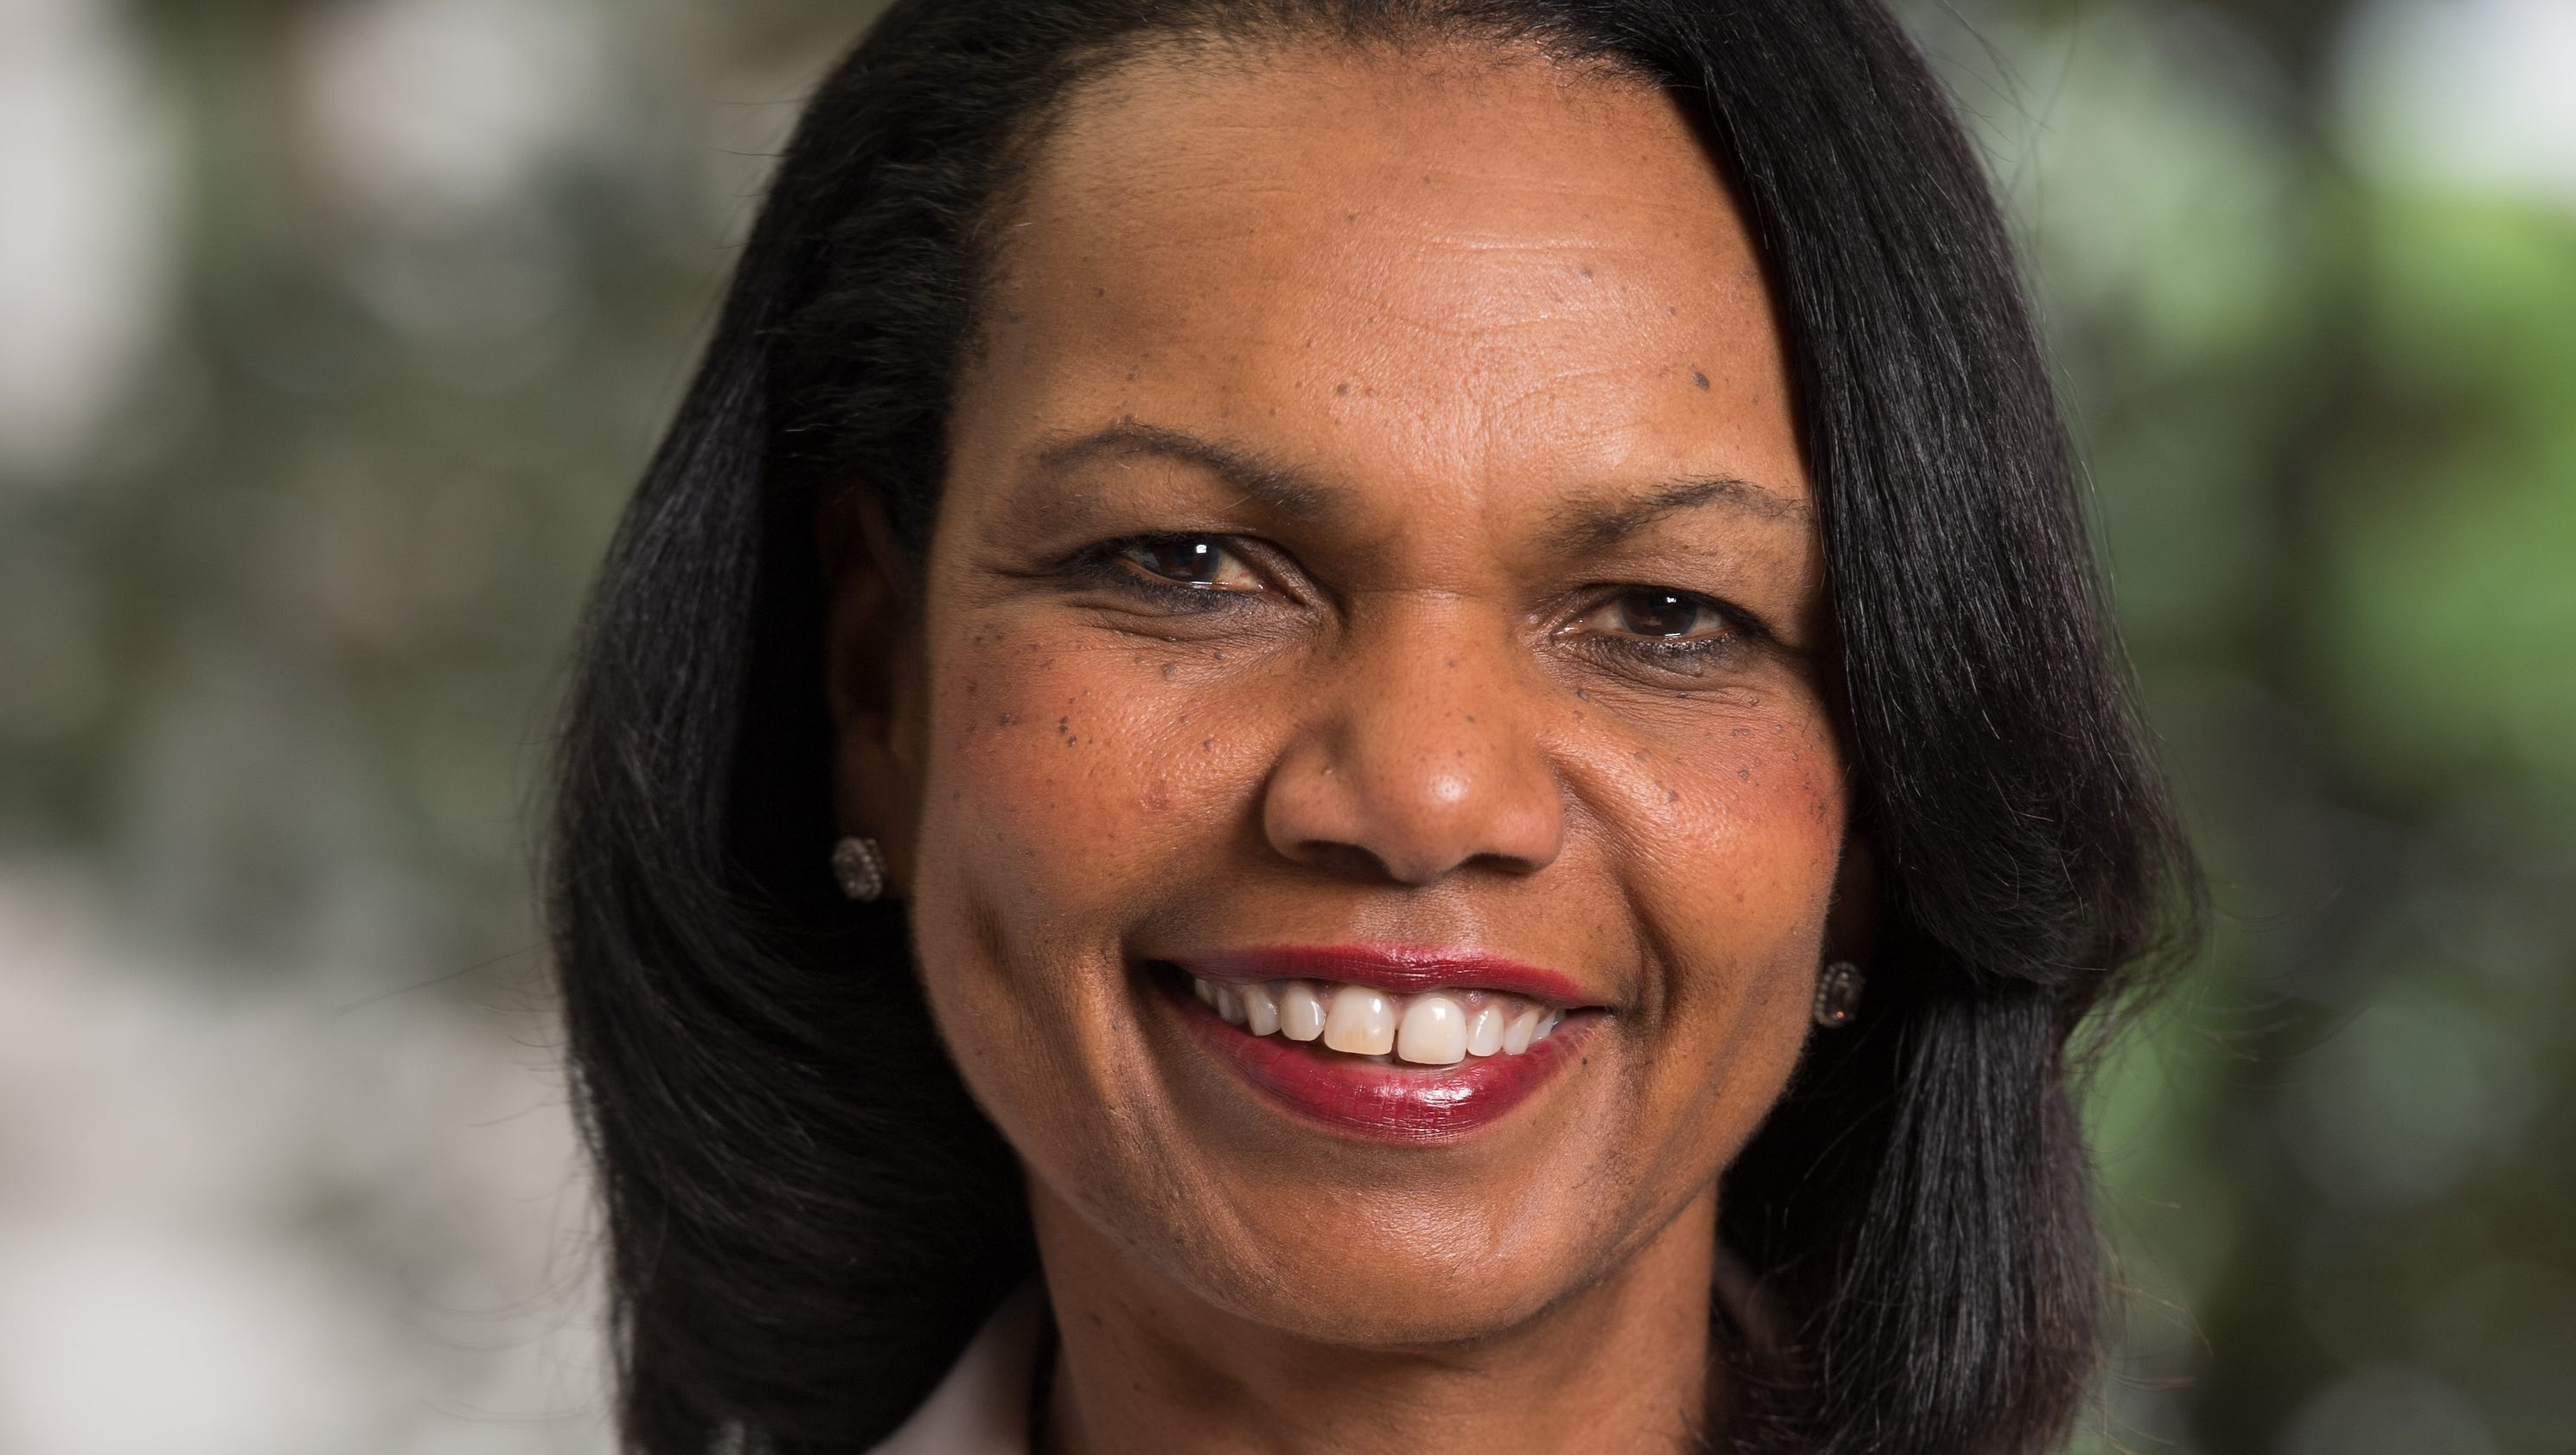 a biography of the life and political career of condoleezza rice Get information, facts, and pictures about condoleezza rice at encyclopediacom make research projects and school reports about condoleezza rice easy with credible.